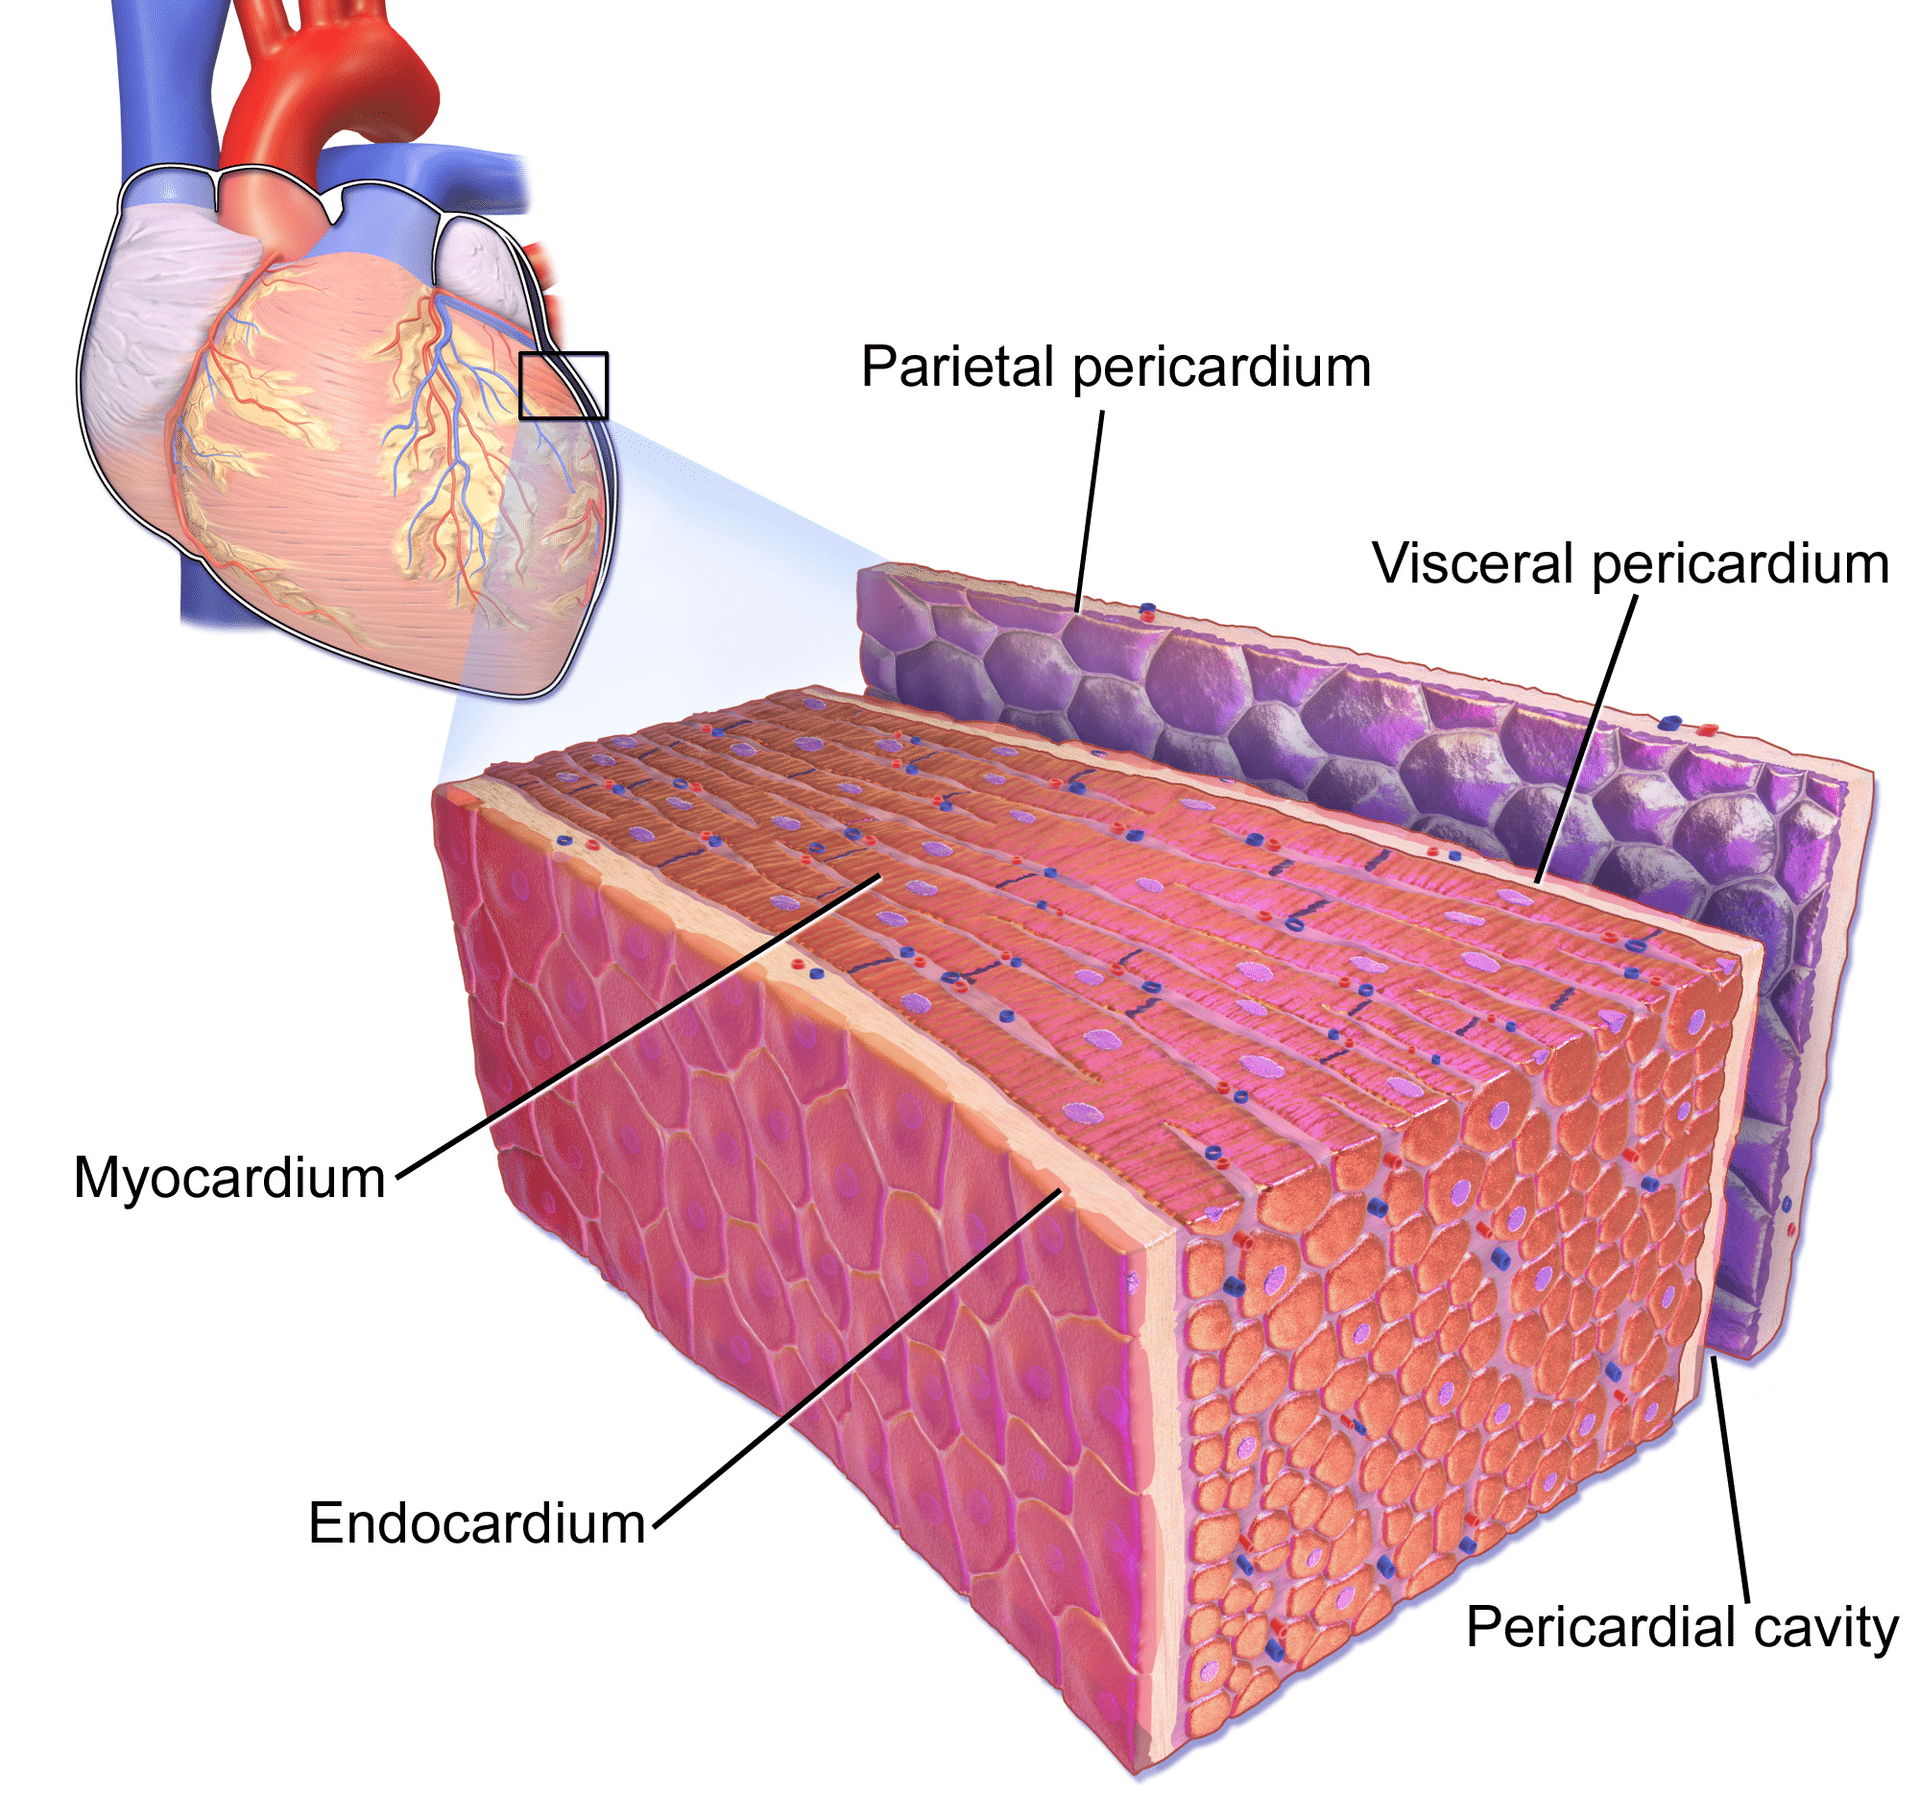 Figure 1. The pericardial sac and the myocardium. Note that pericarditis (inflammation of the pericardial sac) is difficult to discern from myocarditis (inflammation of the myocardial tissue) and because they tend to accompany each other, the term perimyocarditis is often used. Image by Bruce Blausen, Blausen Gallery 2014.